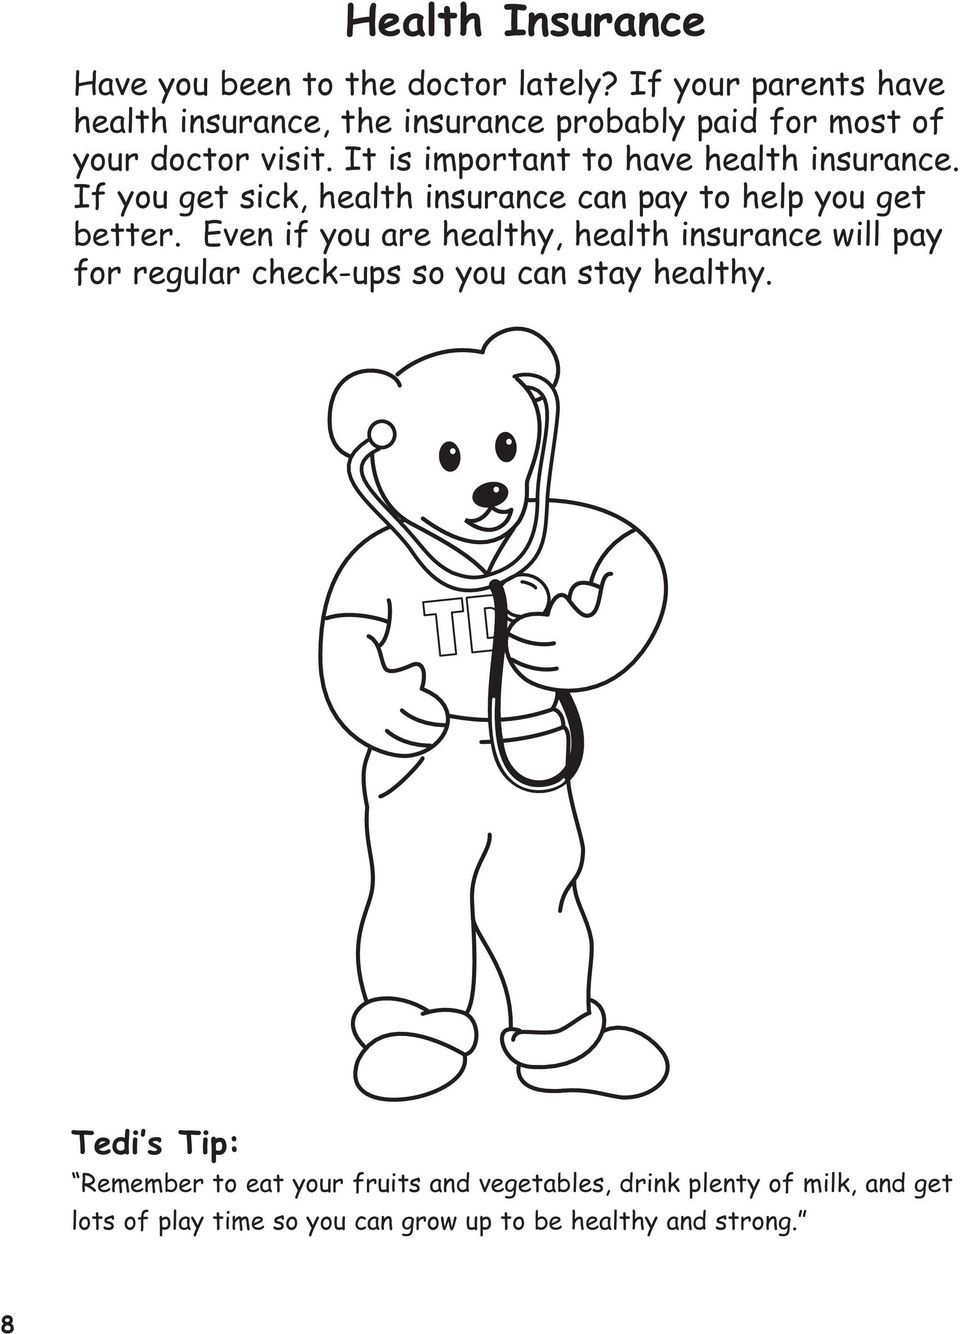 It is important to have health insurance. If you get sick, health insurance can pay to help you get better.